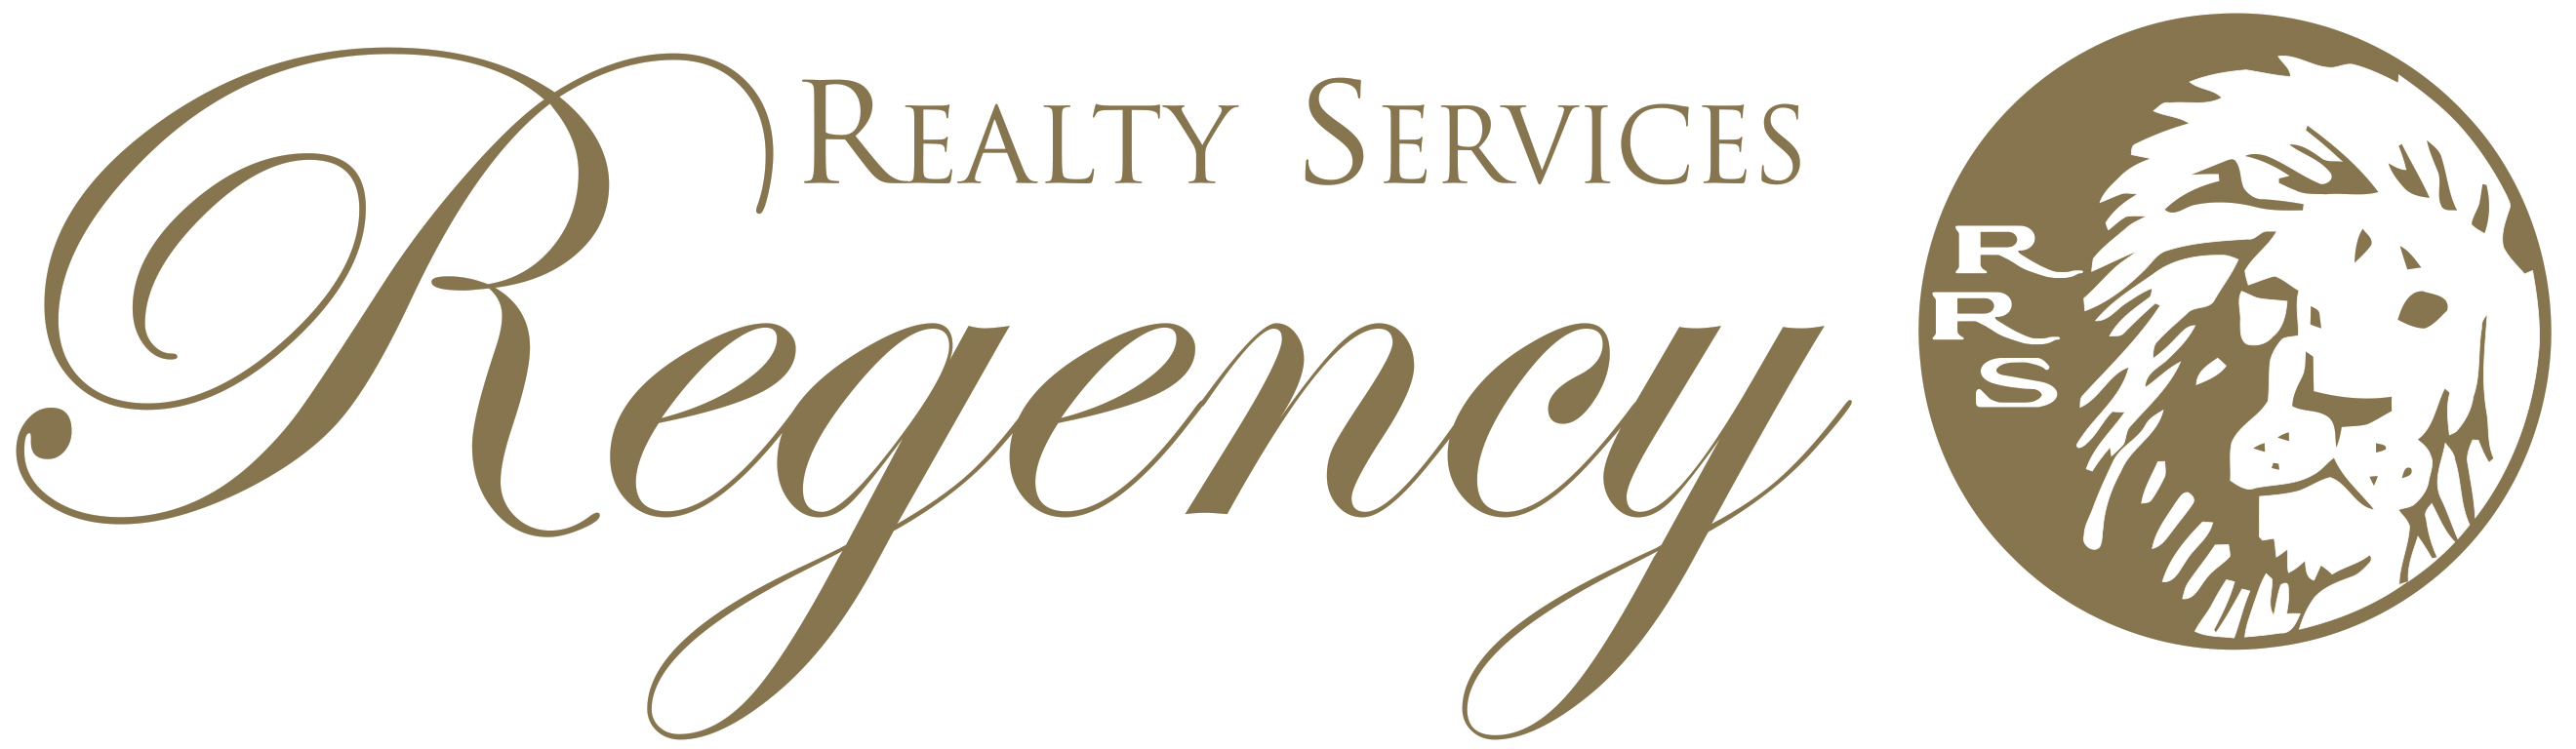 Regency Realty Services